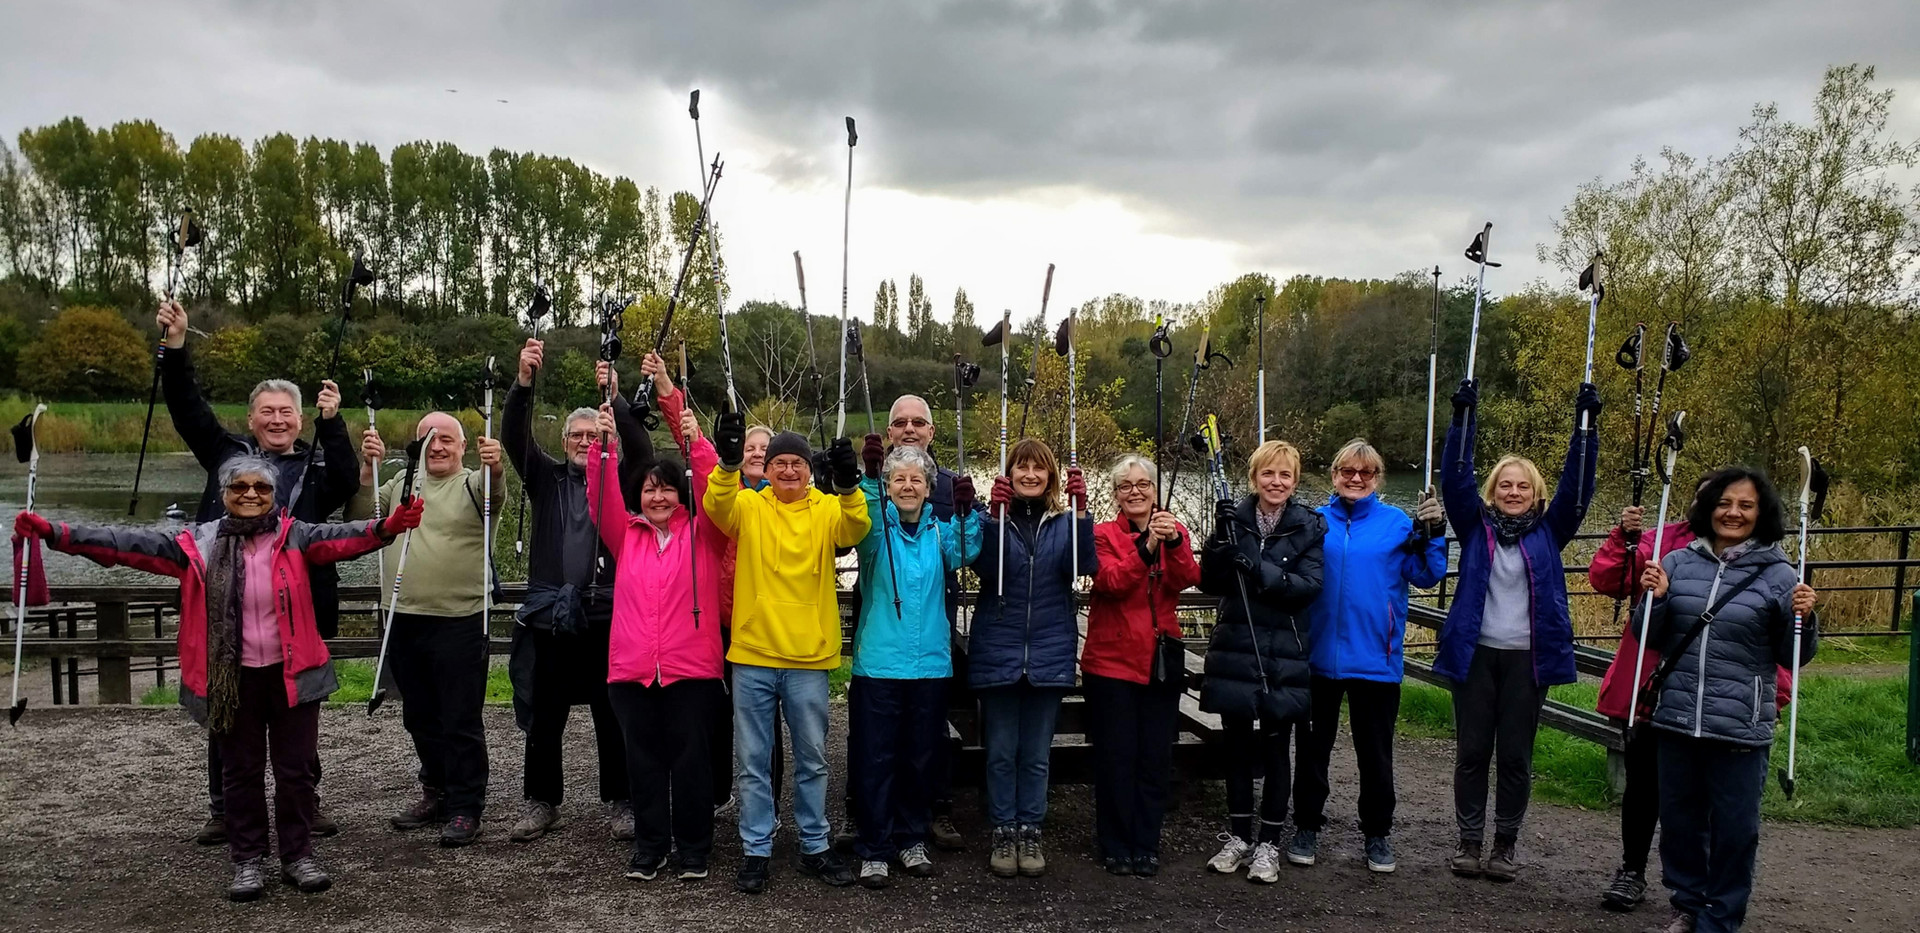 NordicFit+ Nordic Walking group in Chorl